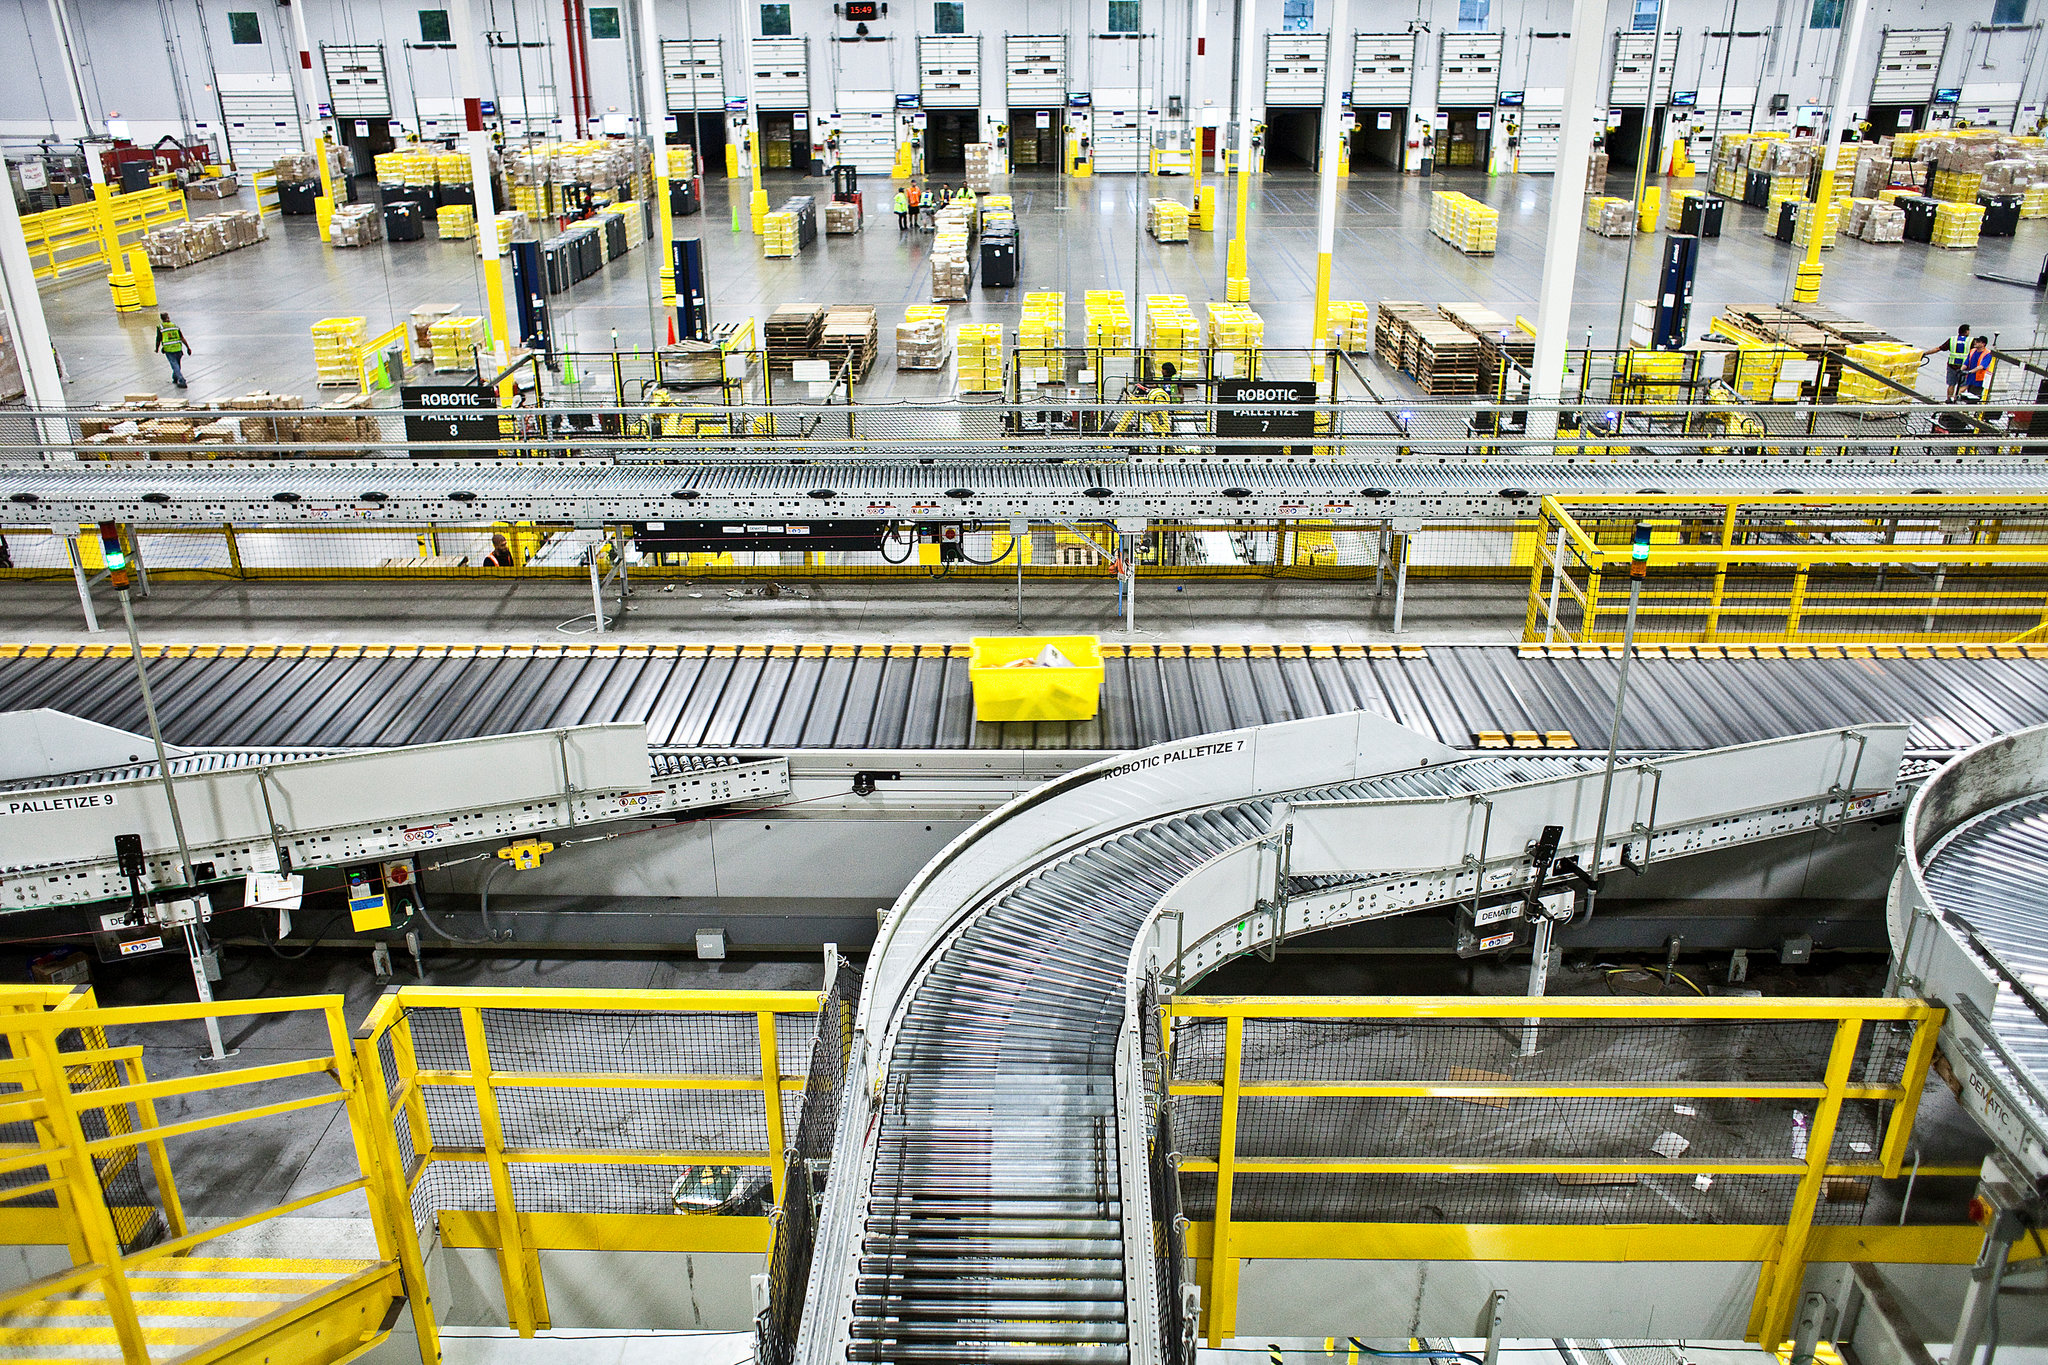 In US and European warehouses, the boom in online shopping during the pandemic has accelerated the switch to automated systems and robots